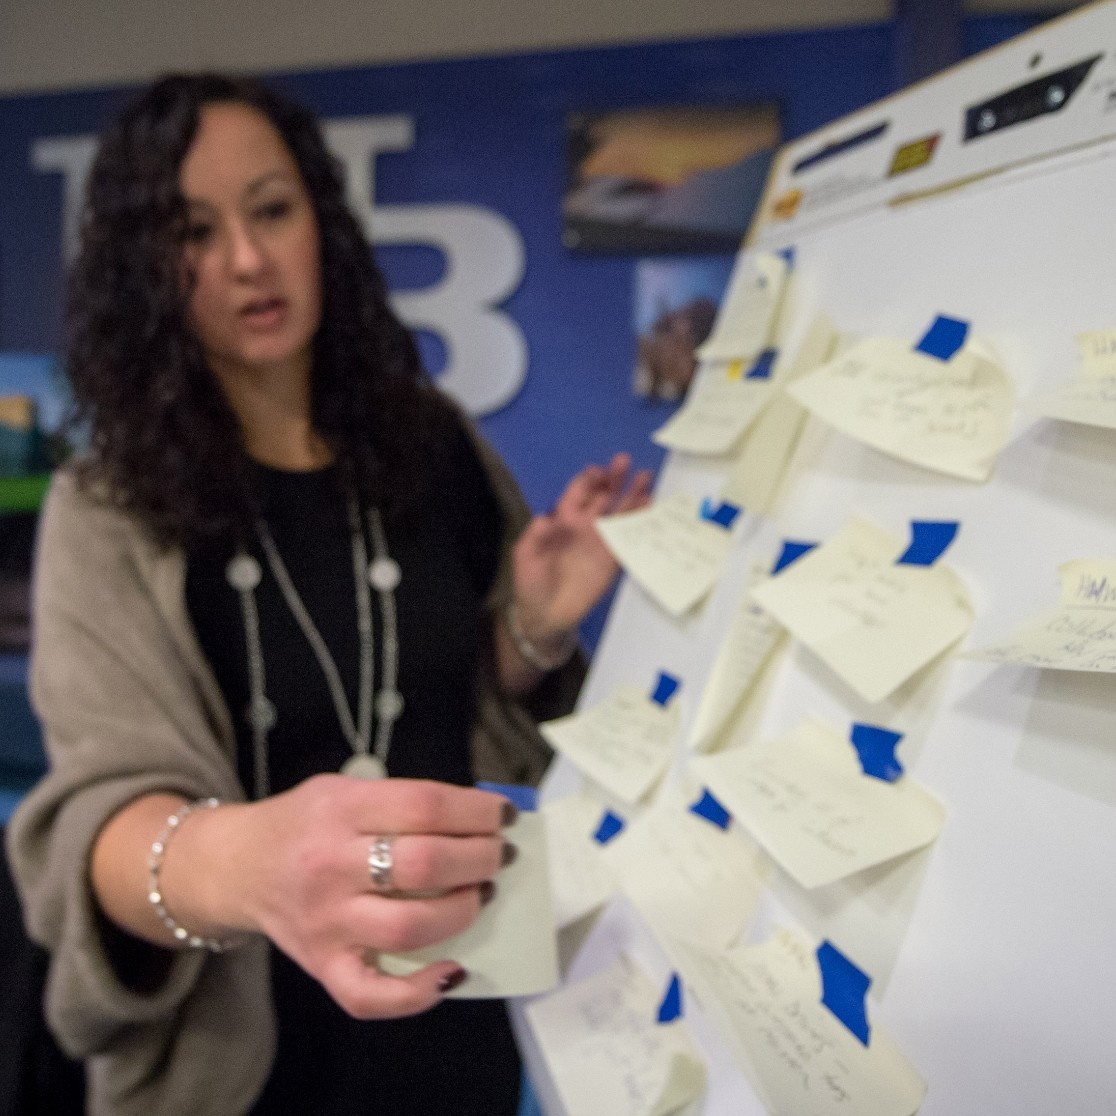 Hadar Borden, program director at Blackstone LaunchPad, facilitates an exercise to brainstorm ideas.